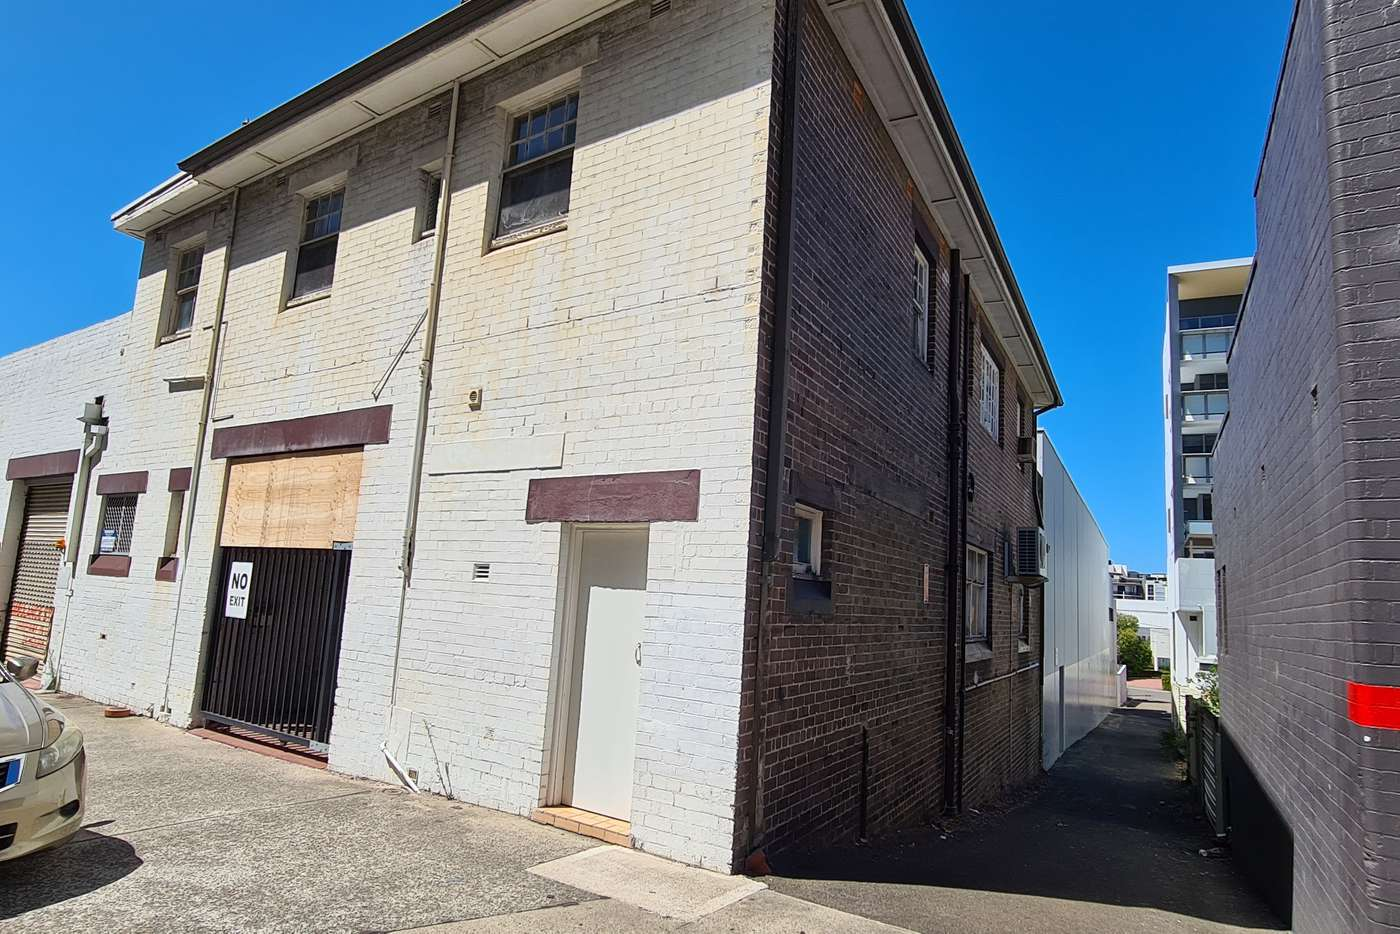 Main view of Homely apartment listing, 575 Princes Highway, Rockdale NSW 2216